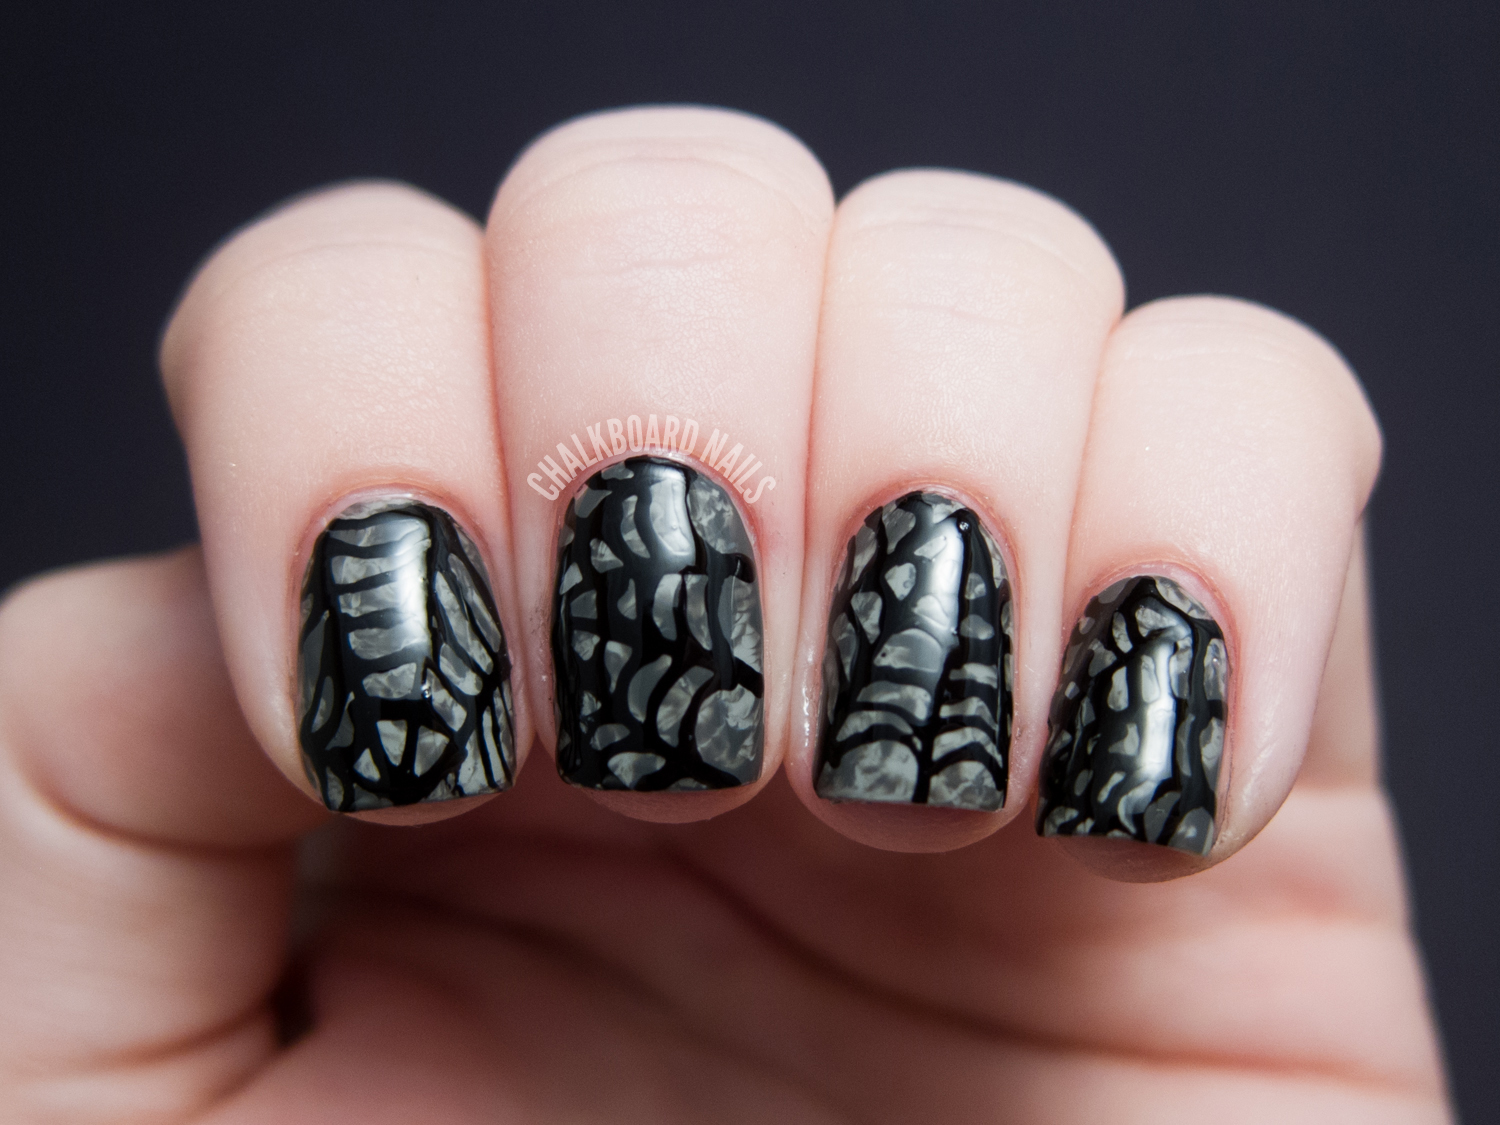 Saran wrap spiderwebs chalkboard nails nail art blog i actually used a migi nail art pen this time instead of my usual nail art brush it was an interesting experience prinsesfo Image collections